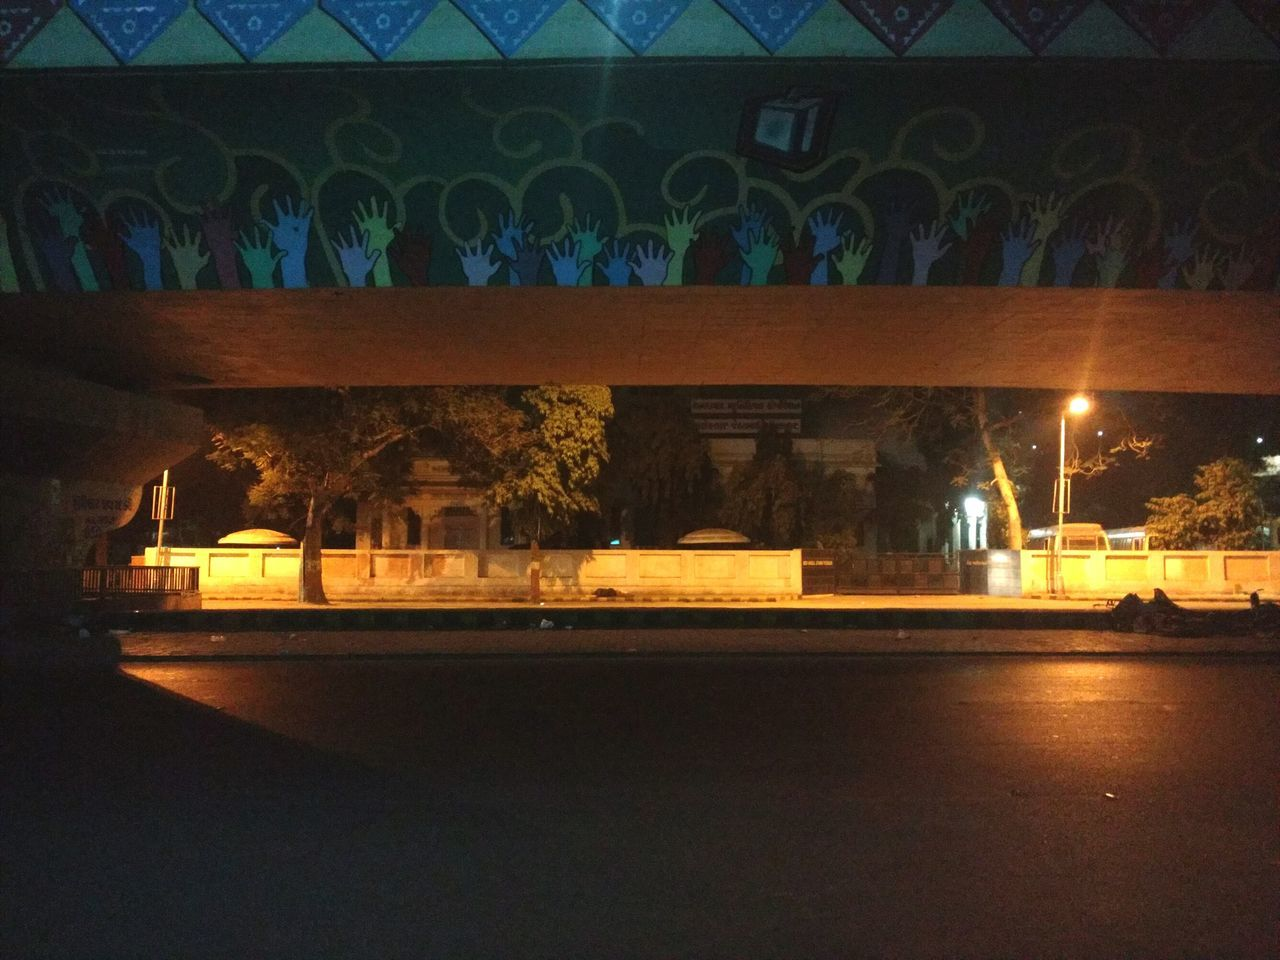 architecture, built structure, illuminated, bridge - man made structure, night, arch, architectural column, indoors, no people, building exterior, nature, tree, city, sky